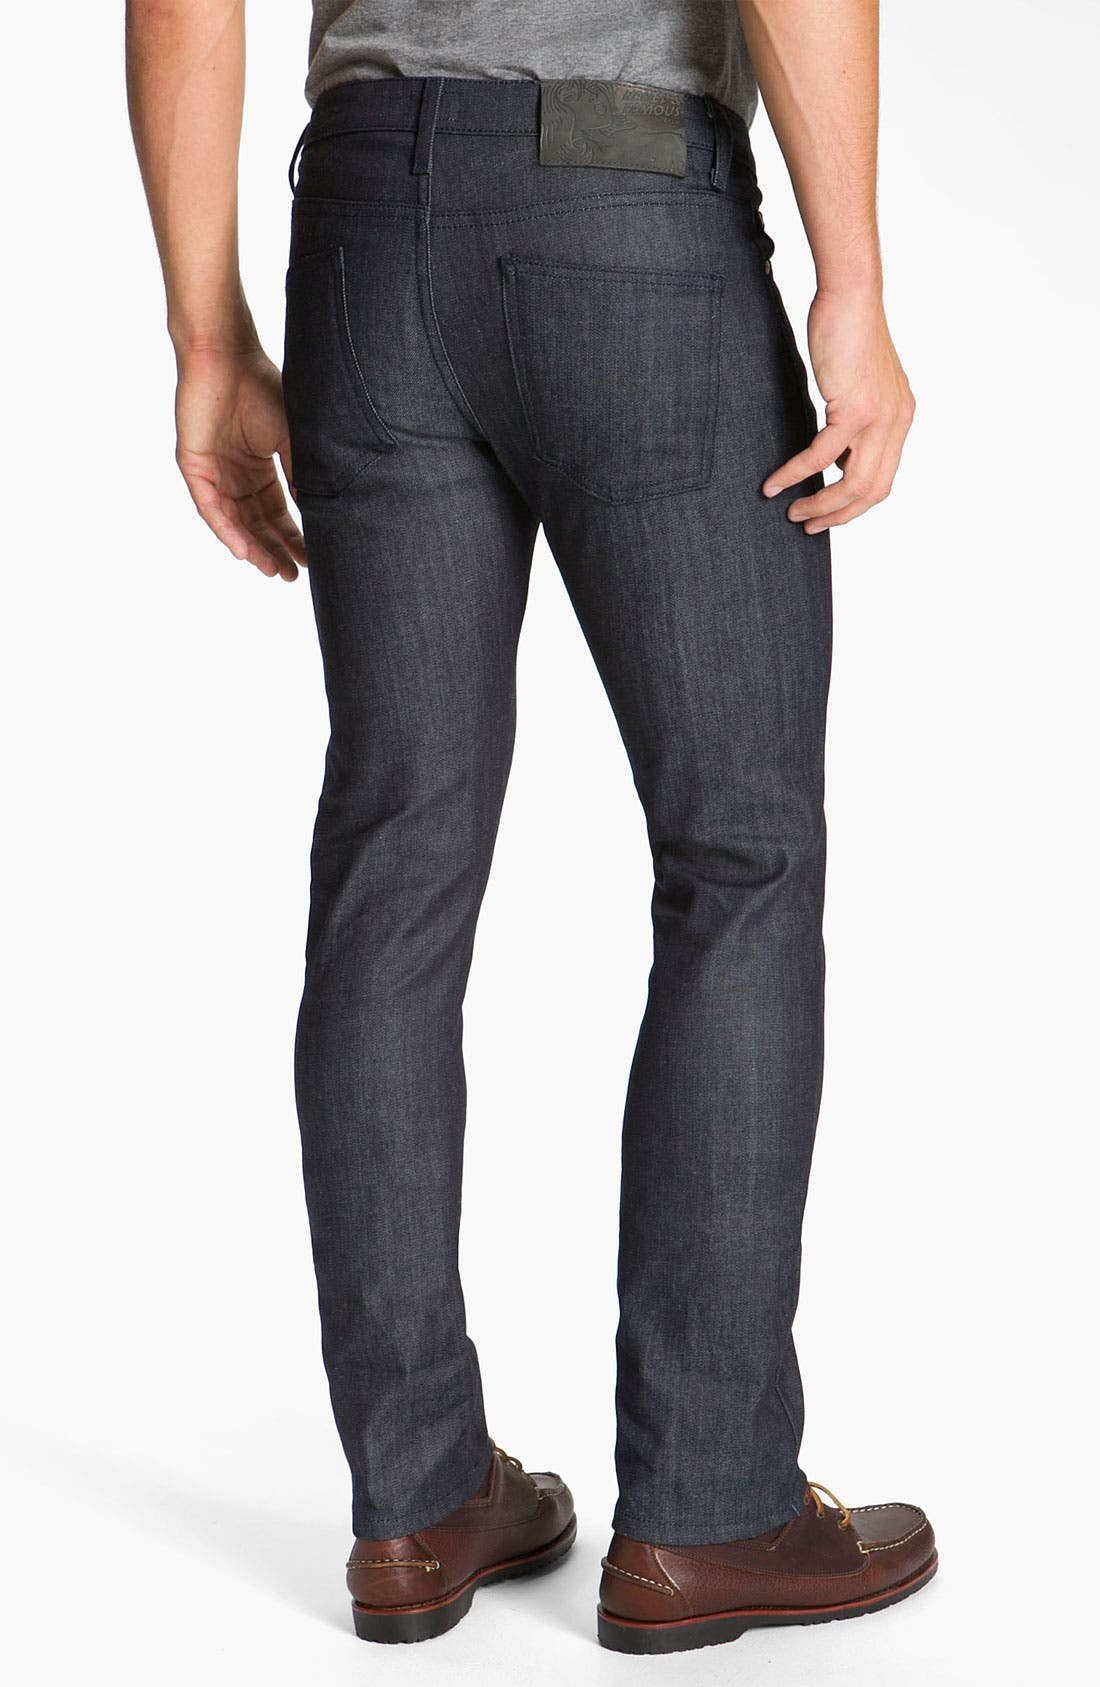 Main Image - Naked & Famous Denim 'Skinny Guy' Slim Cotton Cashmere Skinny Leg Jeans (Dark Indigo)